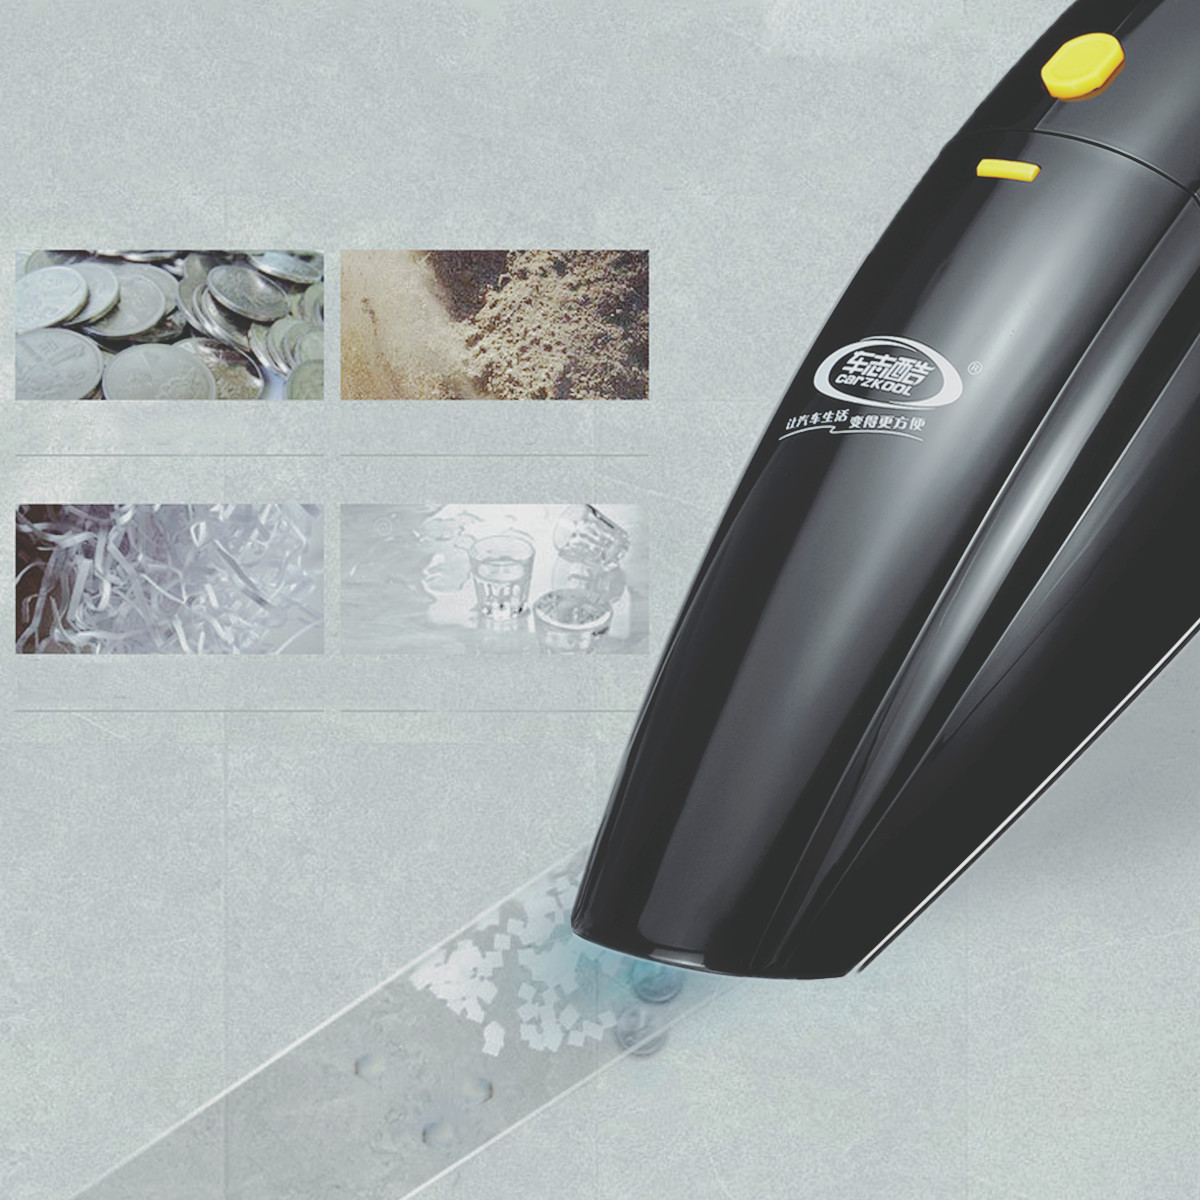 12V Vacuum Cleaner Wet Dry Handheld Cordless Portable Rechargeable 120W Car Home